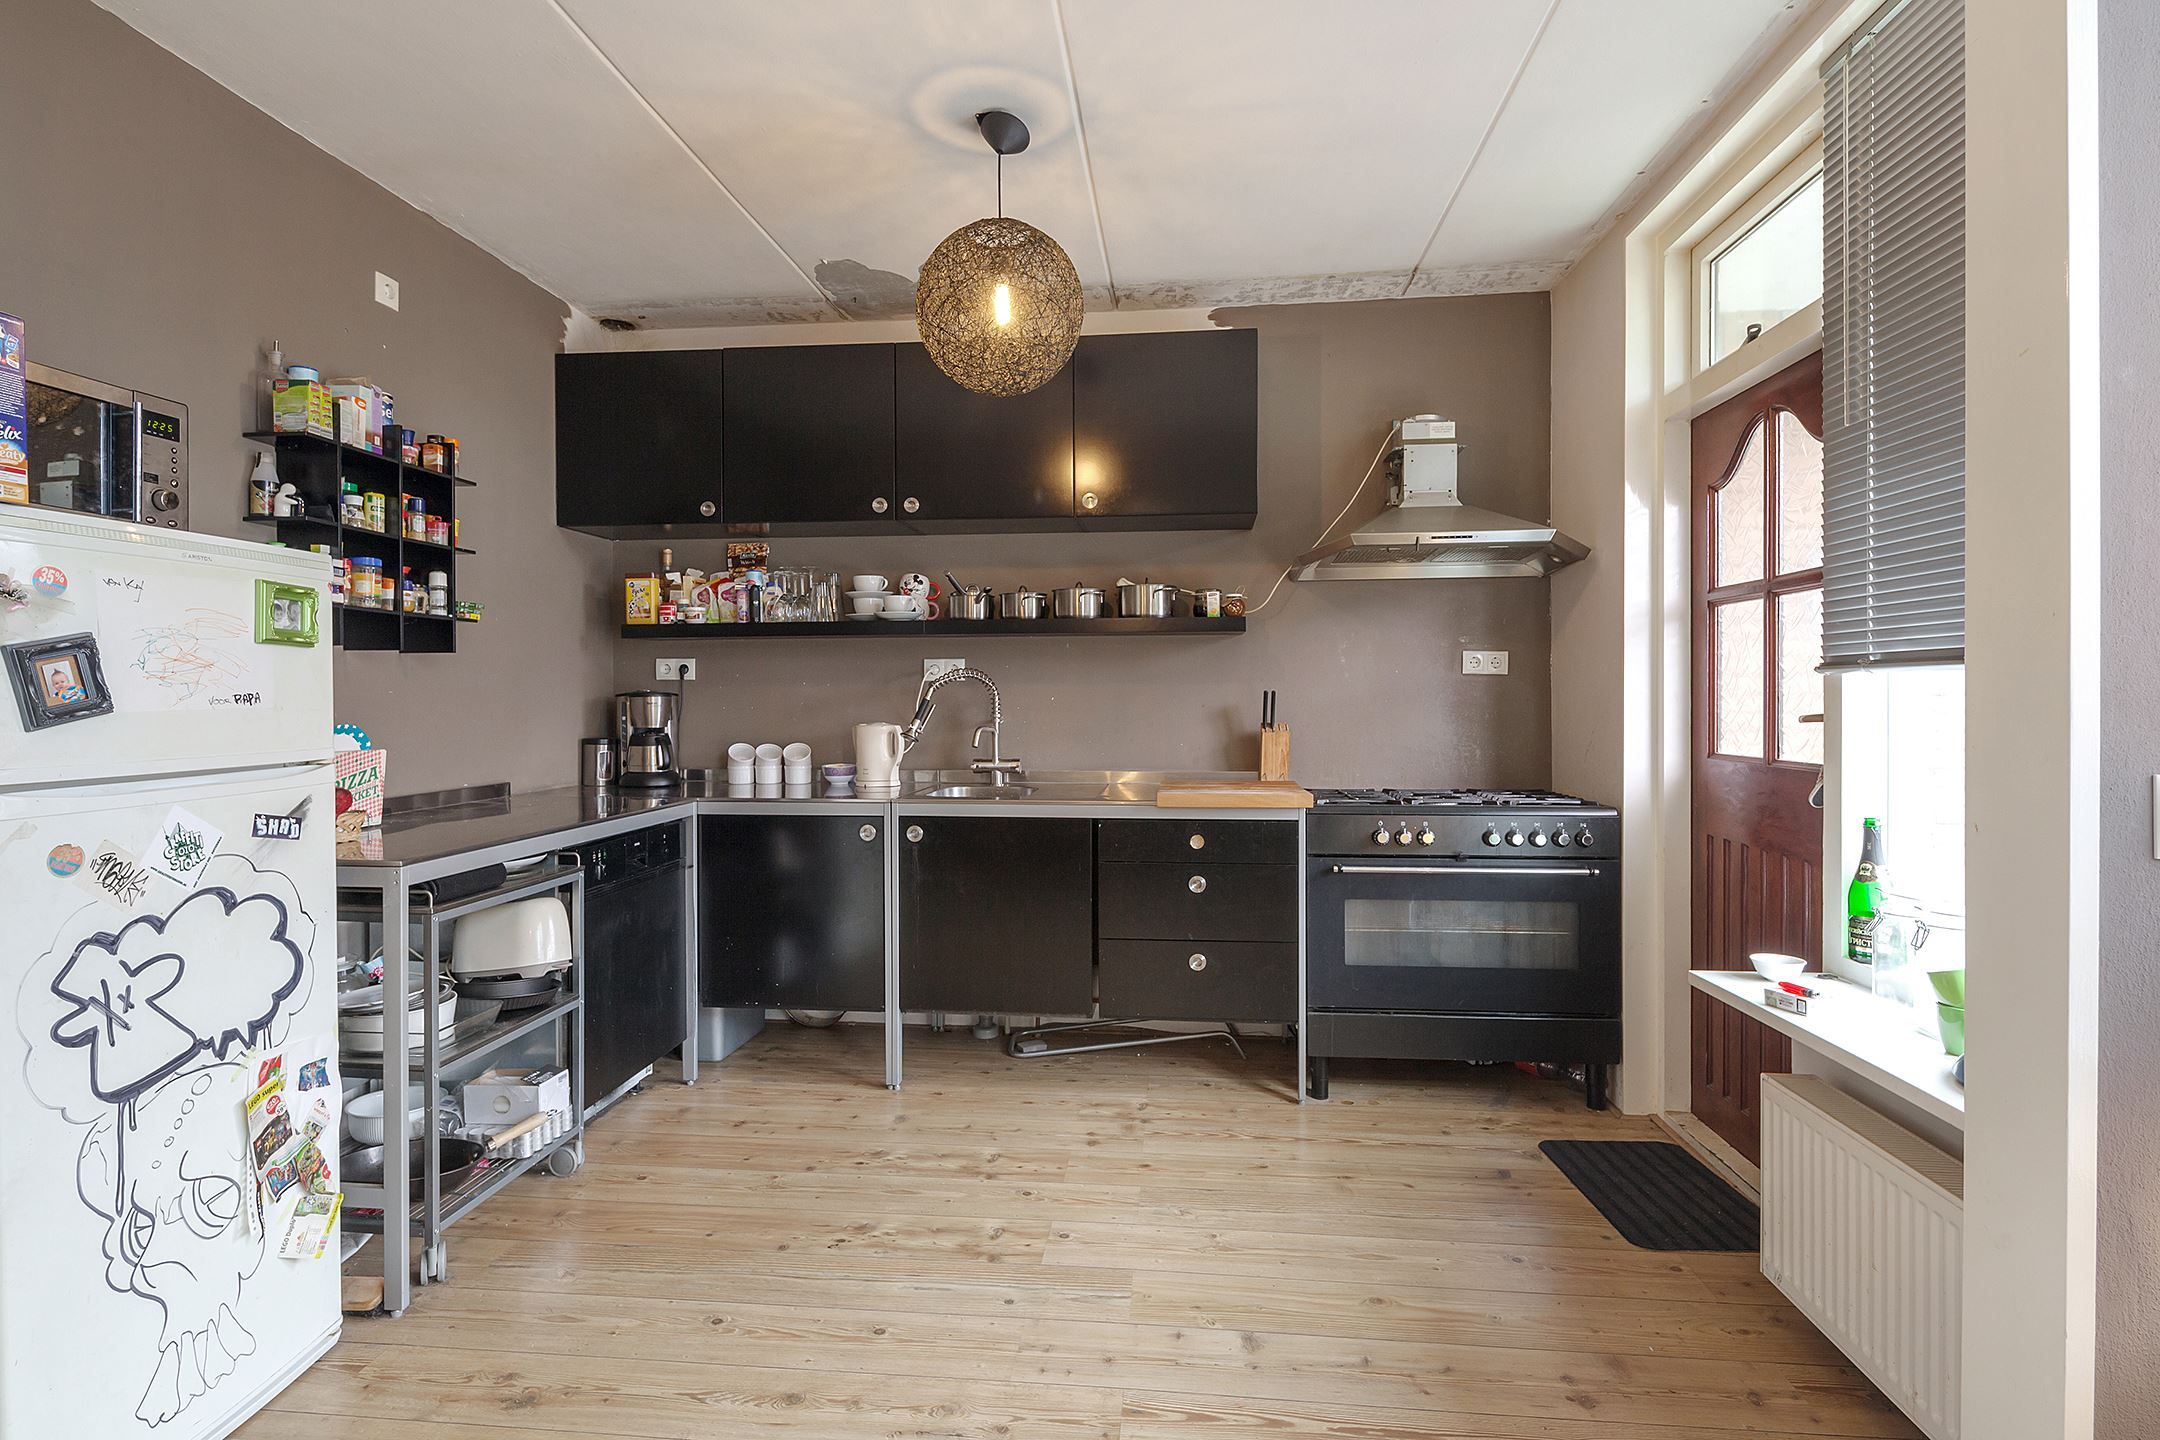 Love love love this kitchen setup. White walls to contrast